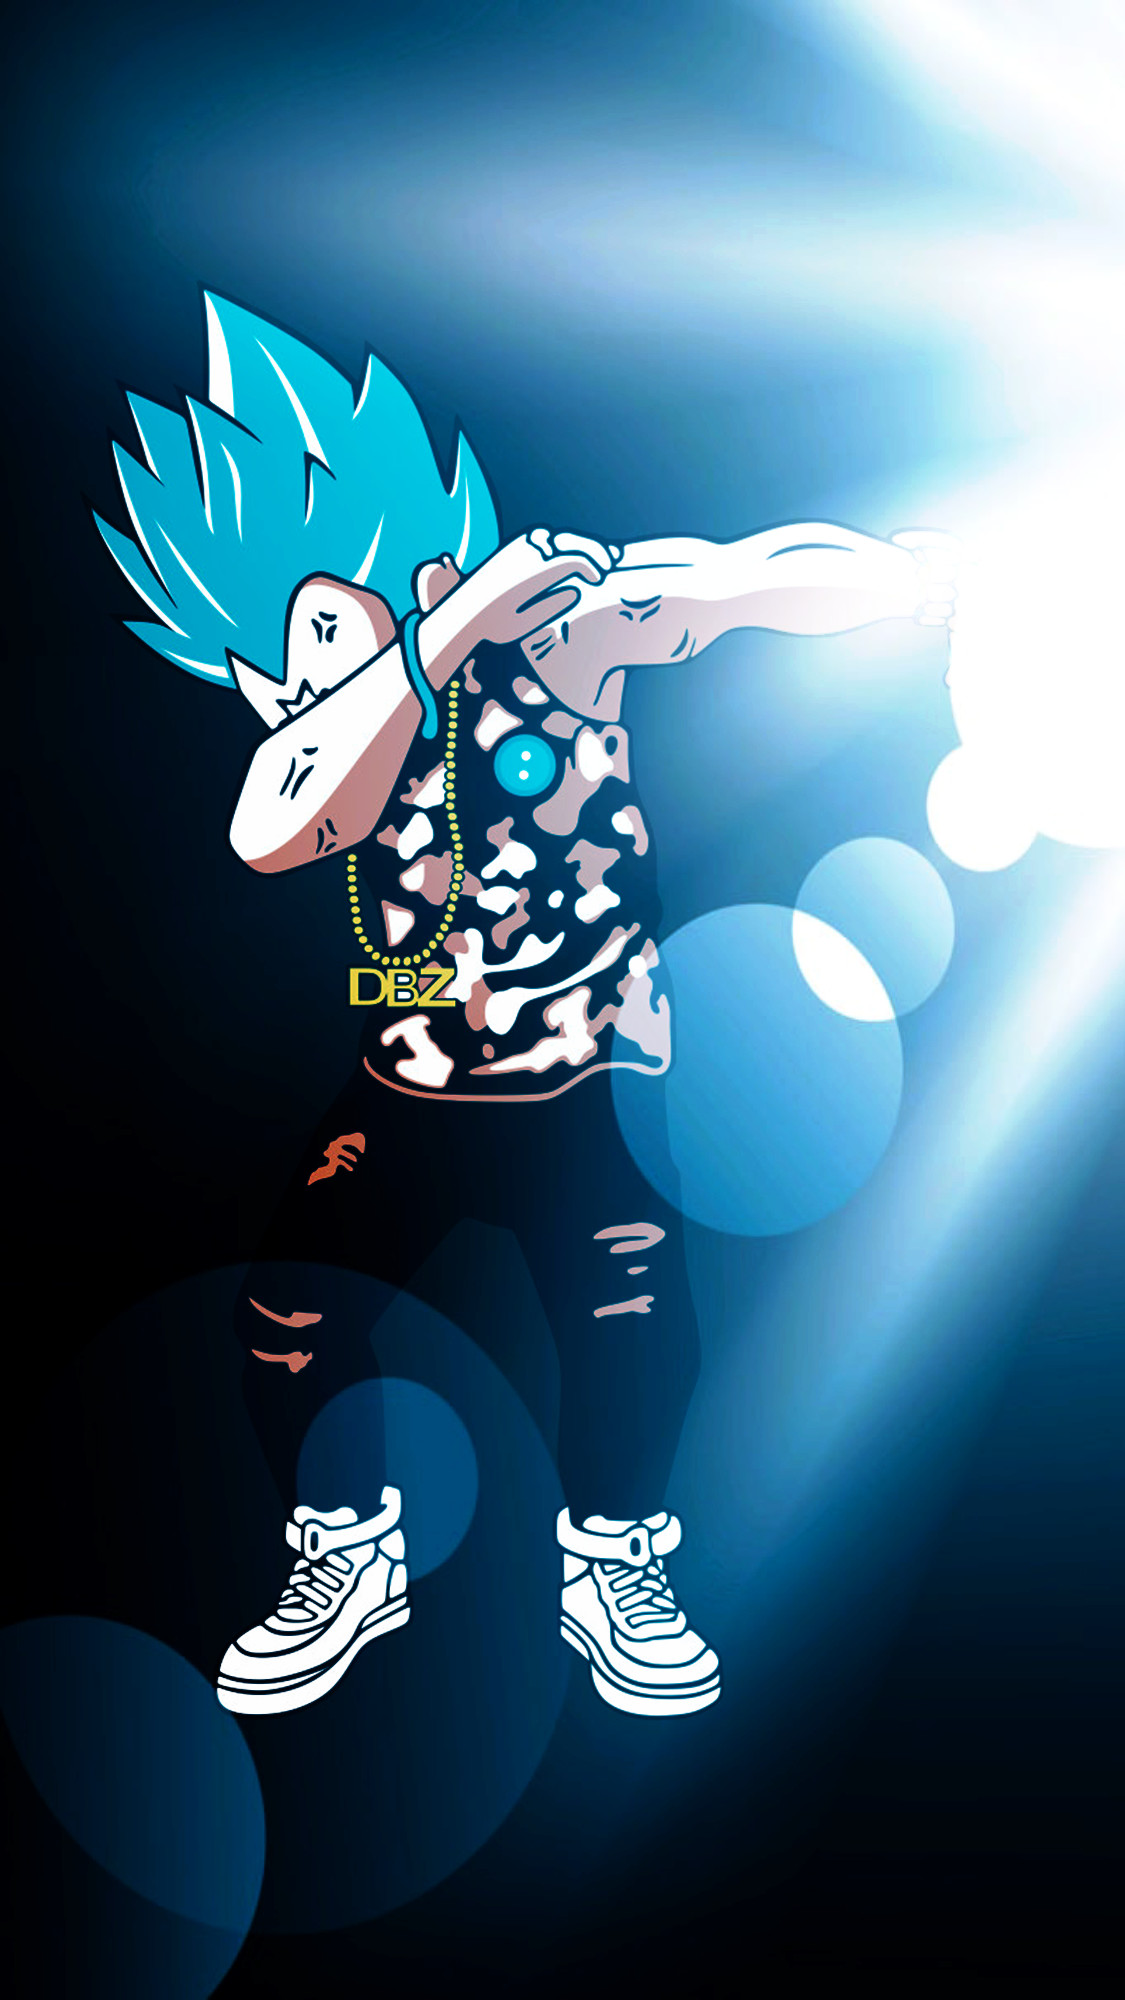 Vegeta phone wallpaper 61 images - Vegeta wallpapers for mobile ...